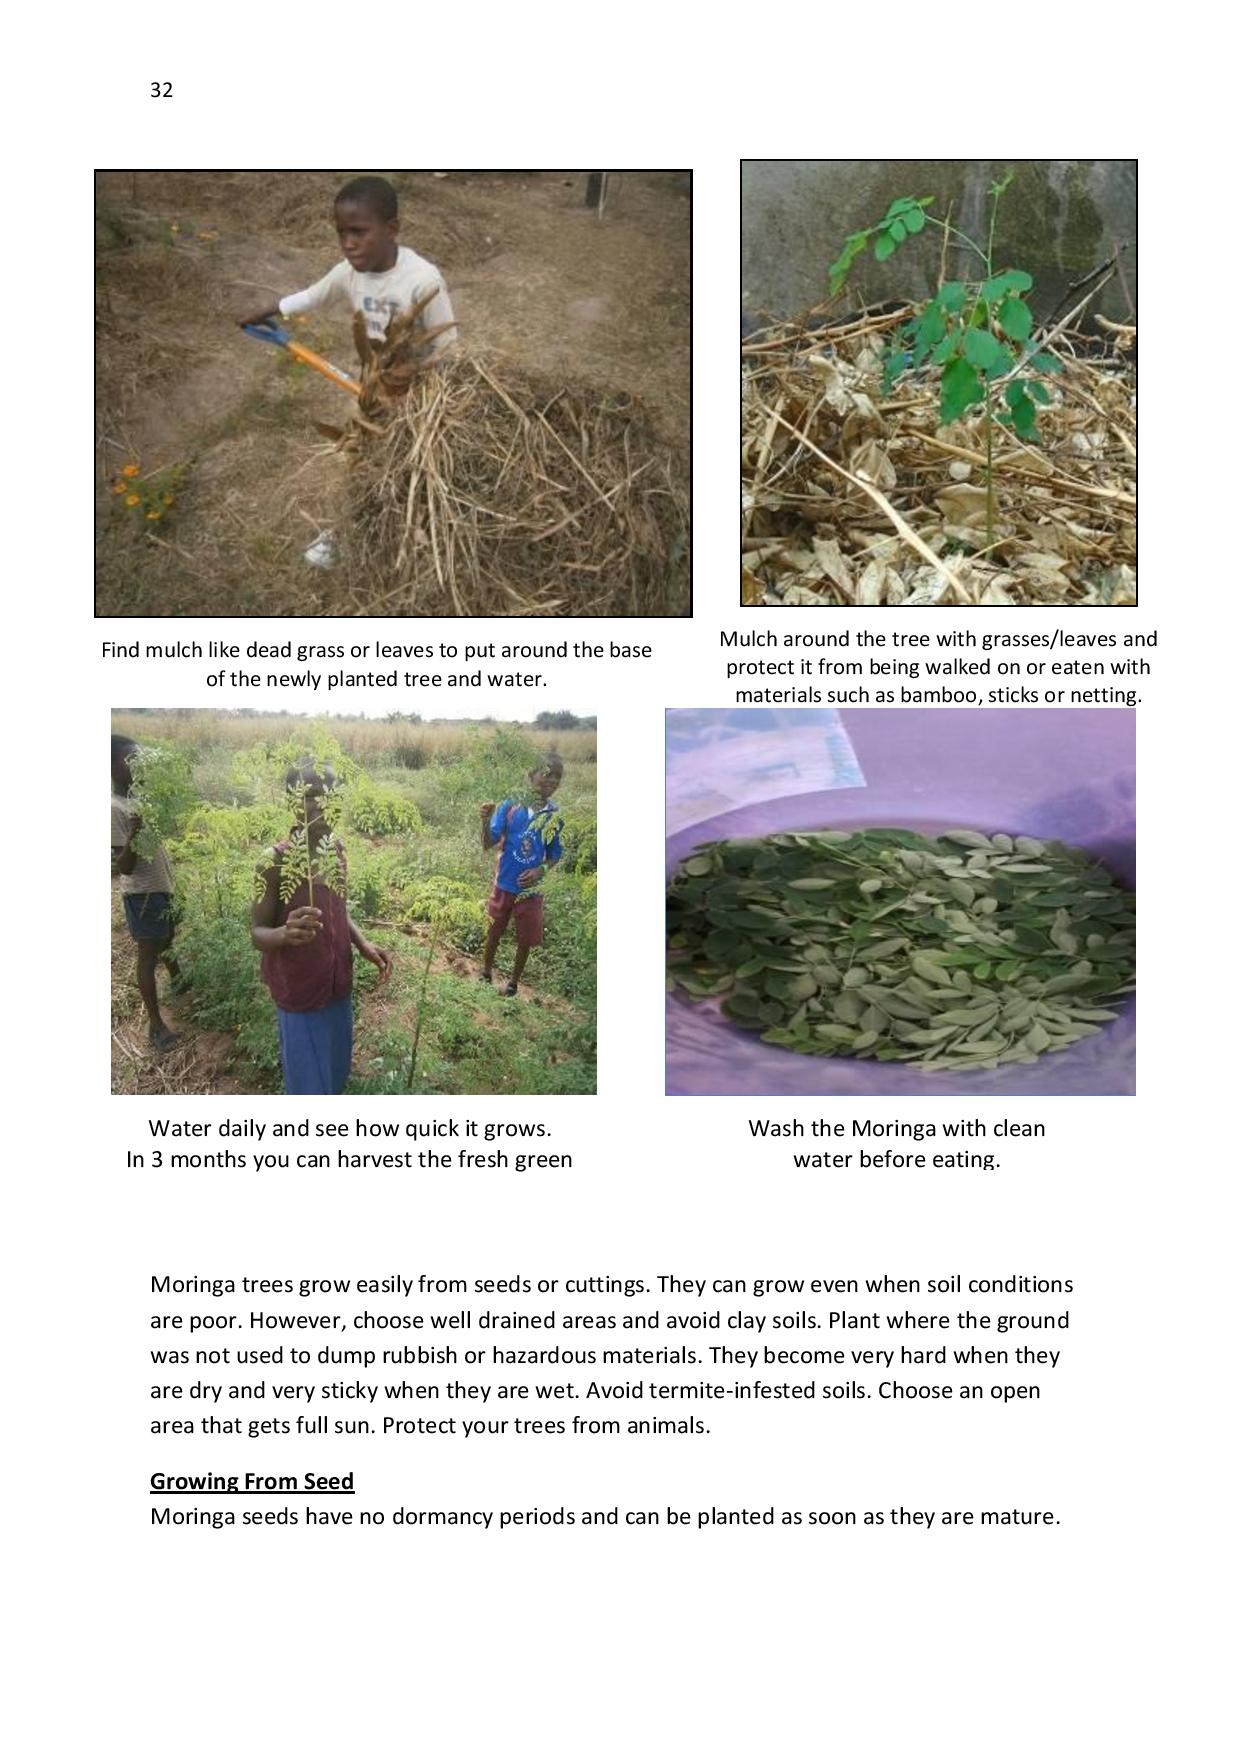 gen-ghana-youth-p-l-a-n-t-moringa-school-garden-manual-page-032